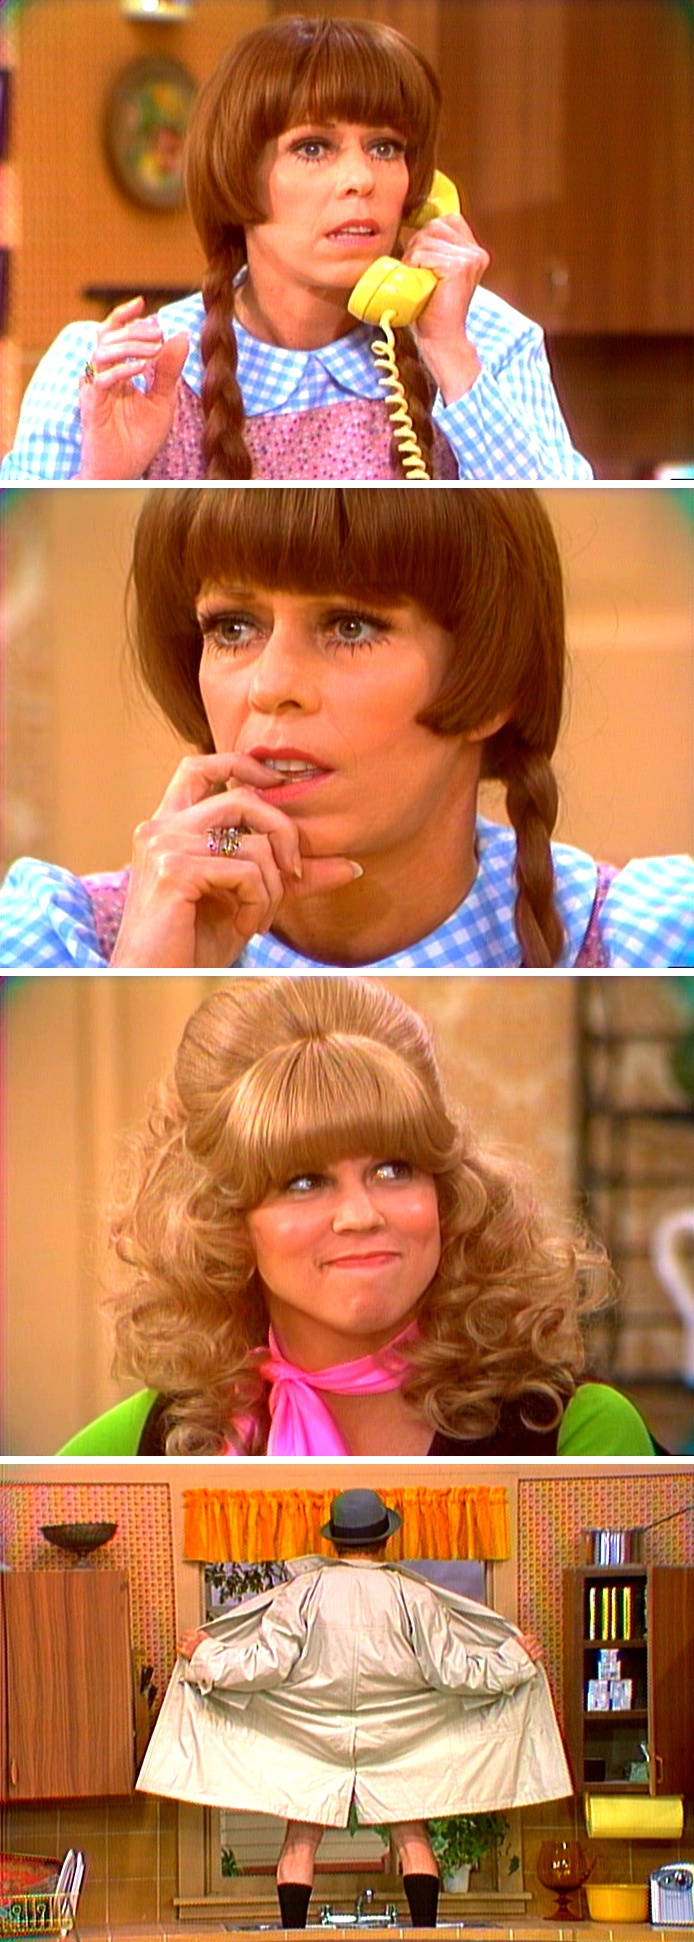 Saturday, Sept. 25, 1976 — The Carol Burnett Show — Carol & Vicki Lawrence in 'Mary, Mary Quite Contrary' spoof of Mary Hartman, Mary Hartman